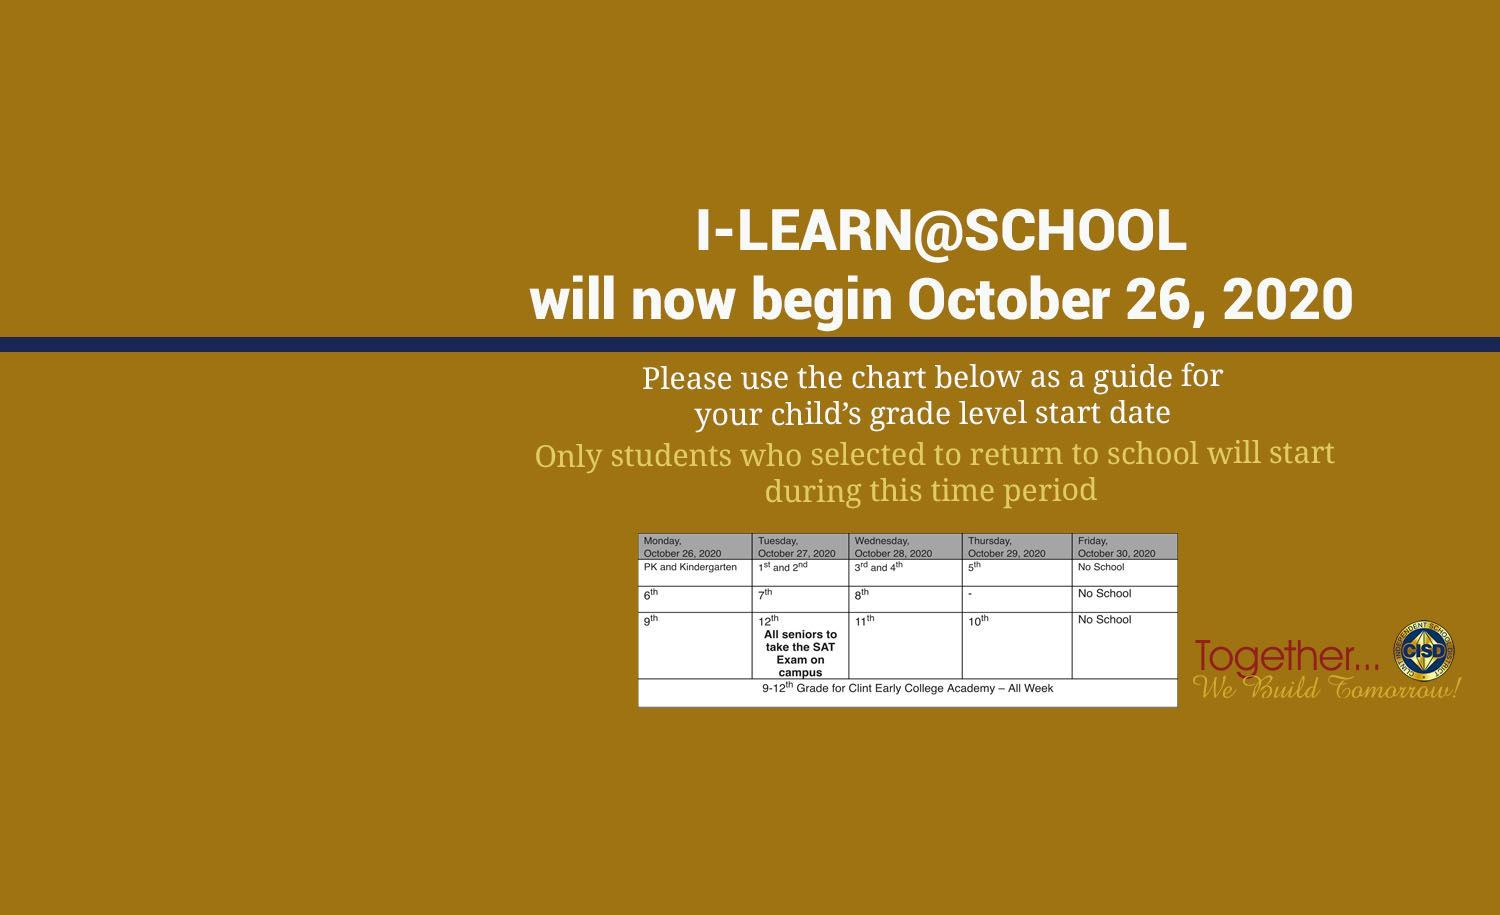 I-LEARN@SCHOOL will now begin October 26th